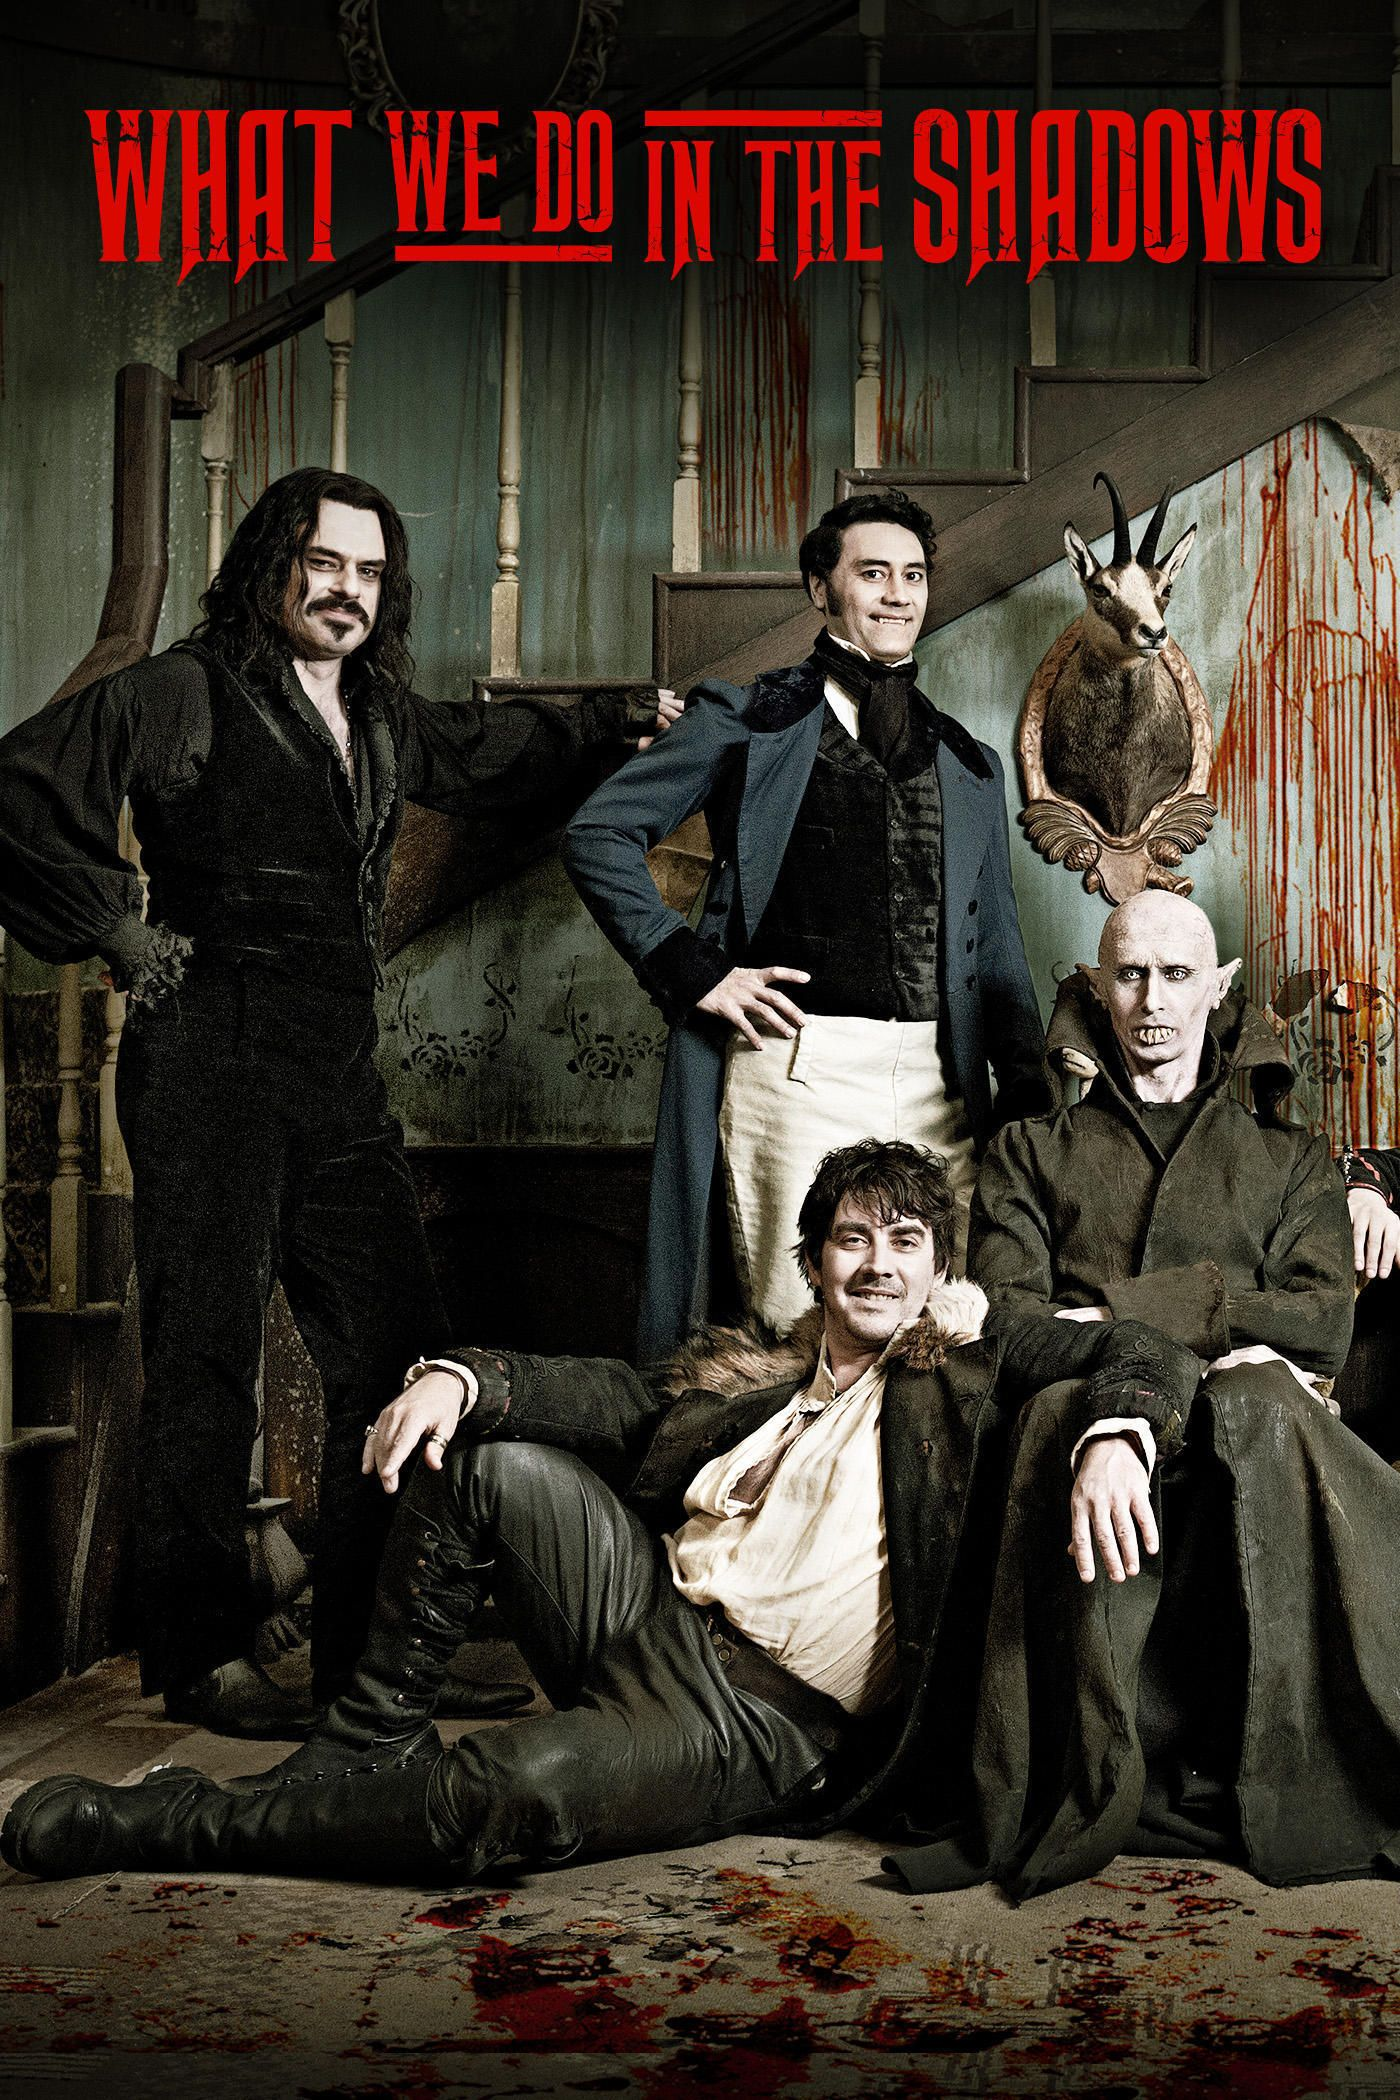 What We Do in the Shadows (2014) - A Horror Mockumentary